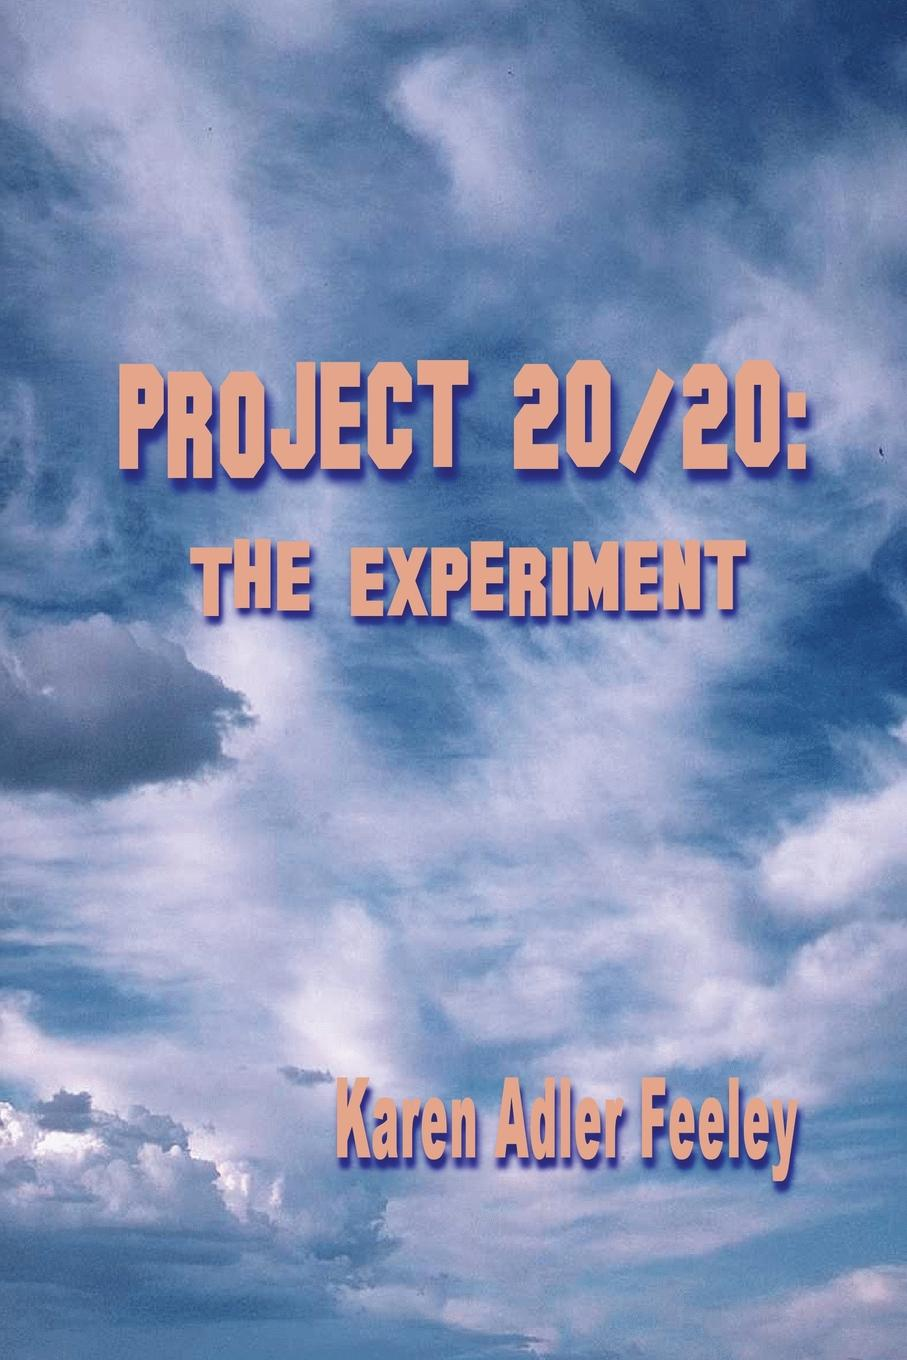 Karen Adler Feeley Project 20/20. The Experiment bob taylor guitar lessons a life s journey turning passion into business